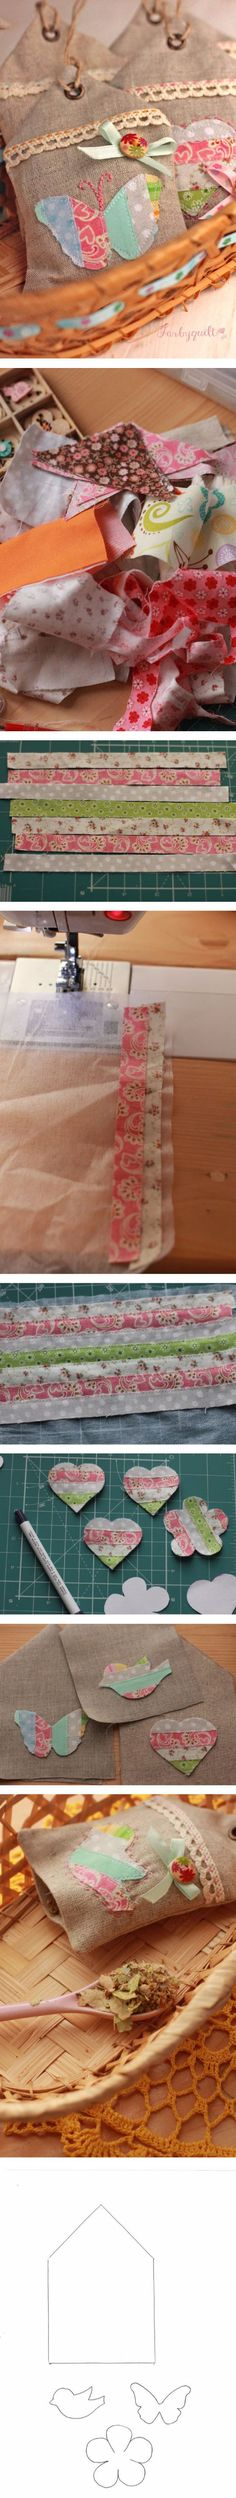 "How to sew sachets ""houses"""